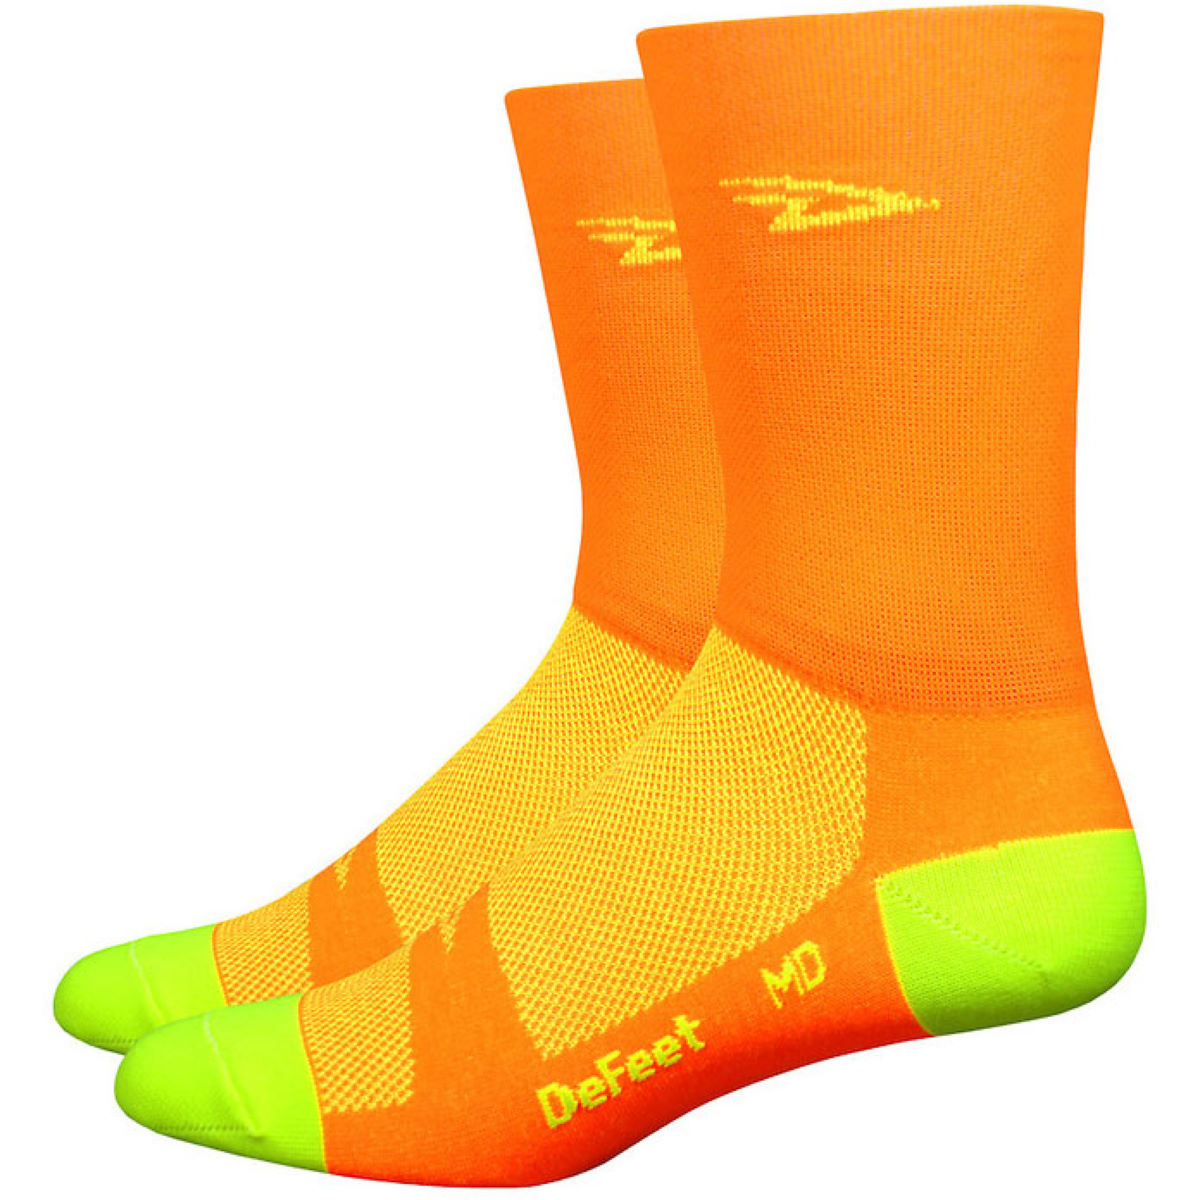 Chaussettes hautes DeFeet Aireator Hi-Vis - S Orange/Yellow